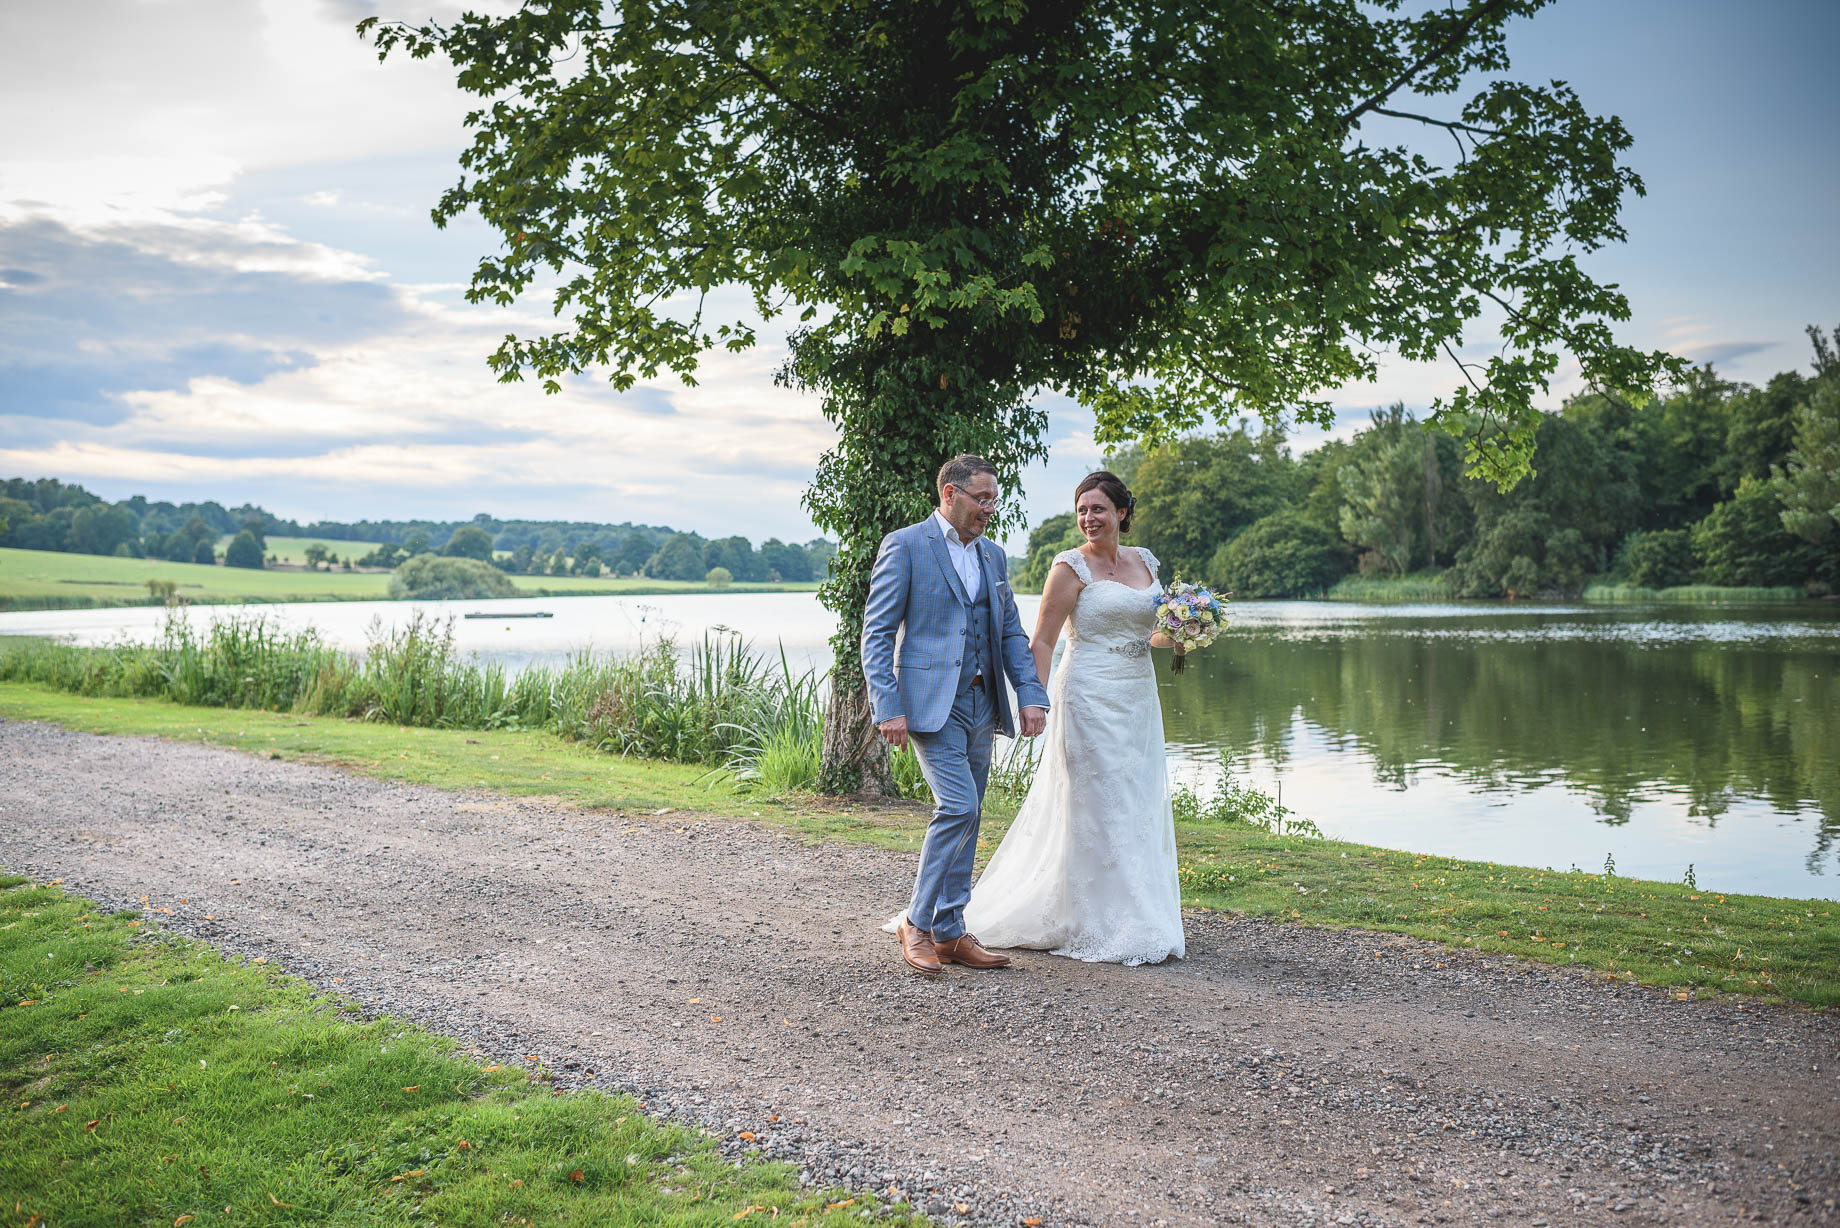 Luton Hoo wedding photography by Guy Collier Photography - Lauren and Gem (163 of 178)